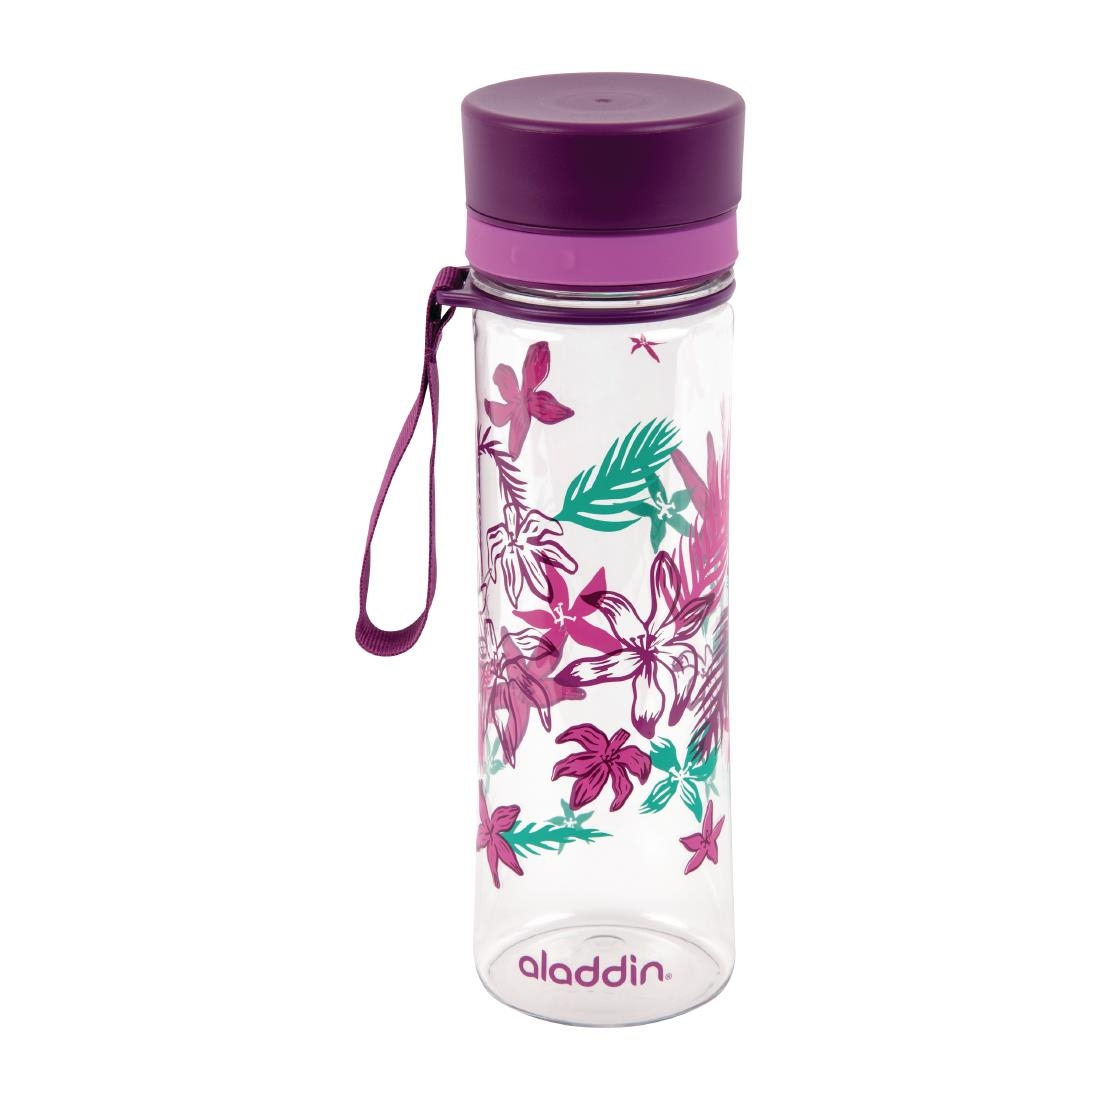 Image of Aladdin Aveo Reusable Water Bottle Purple Graphics 600ml / 21oz